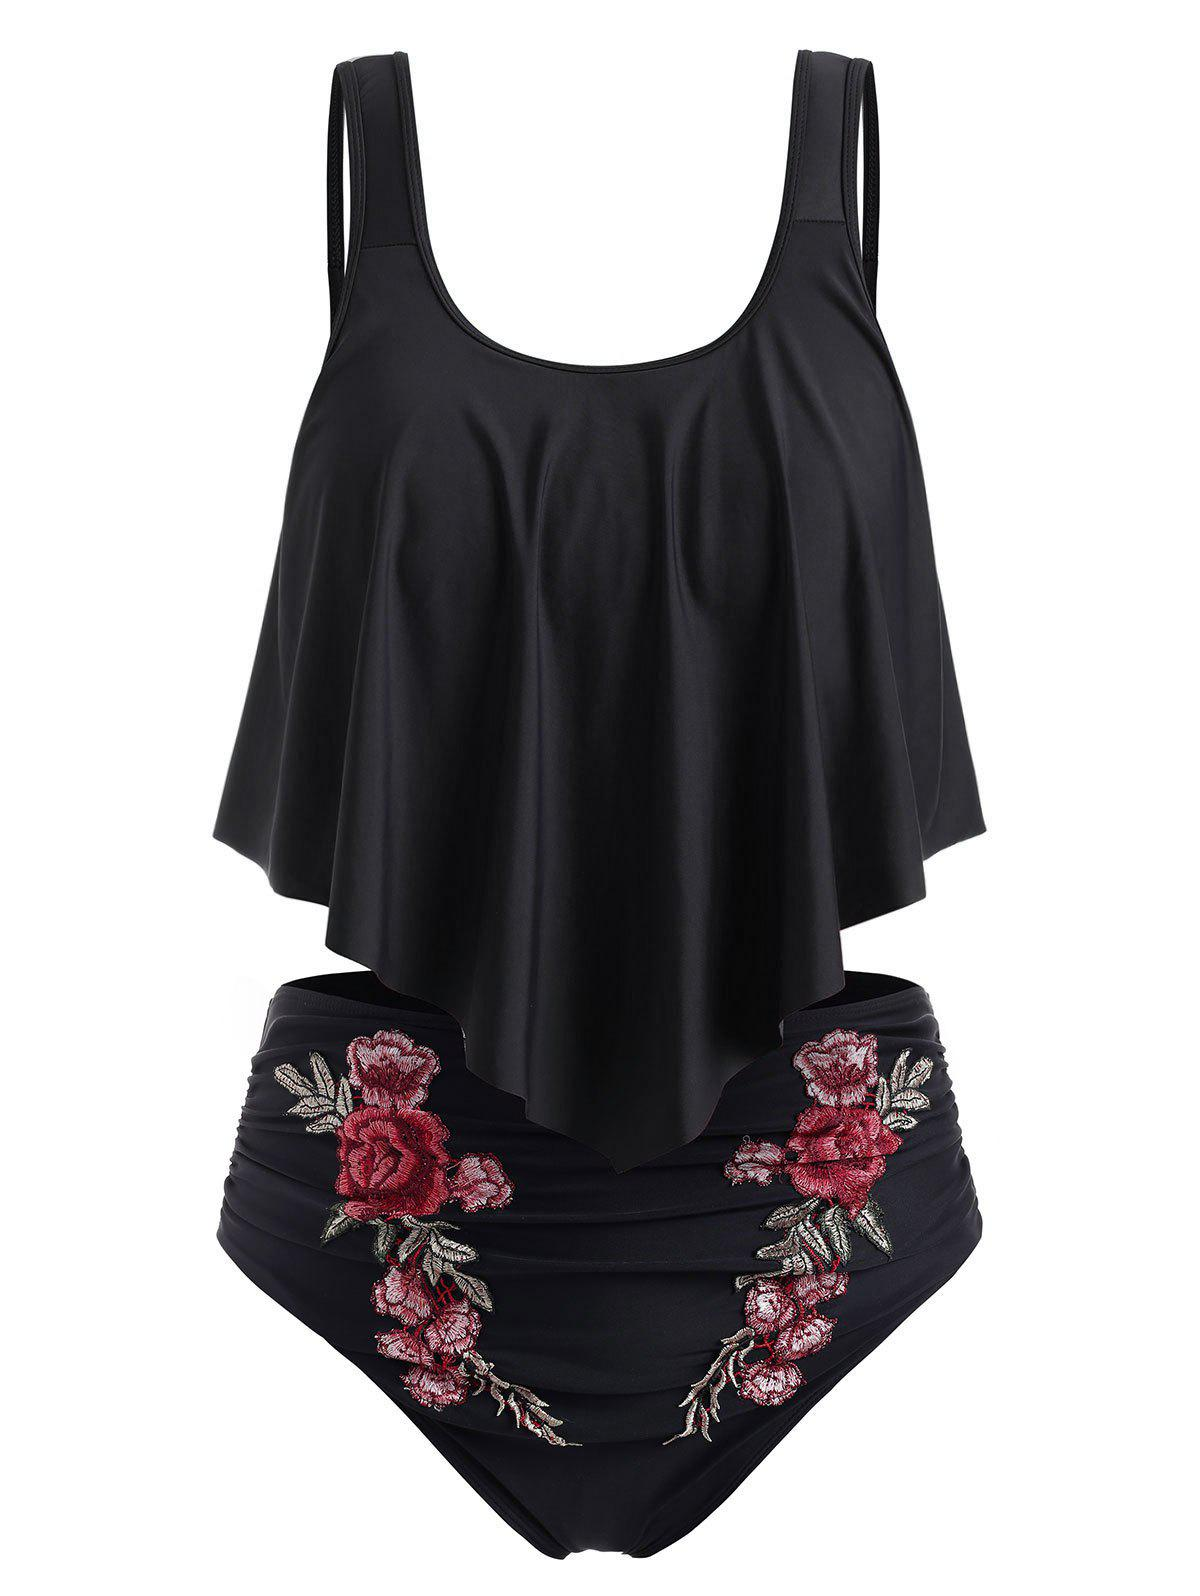 New Plus Size Embroidered Ruffled Bikini Swimsuit